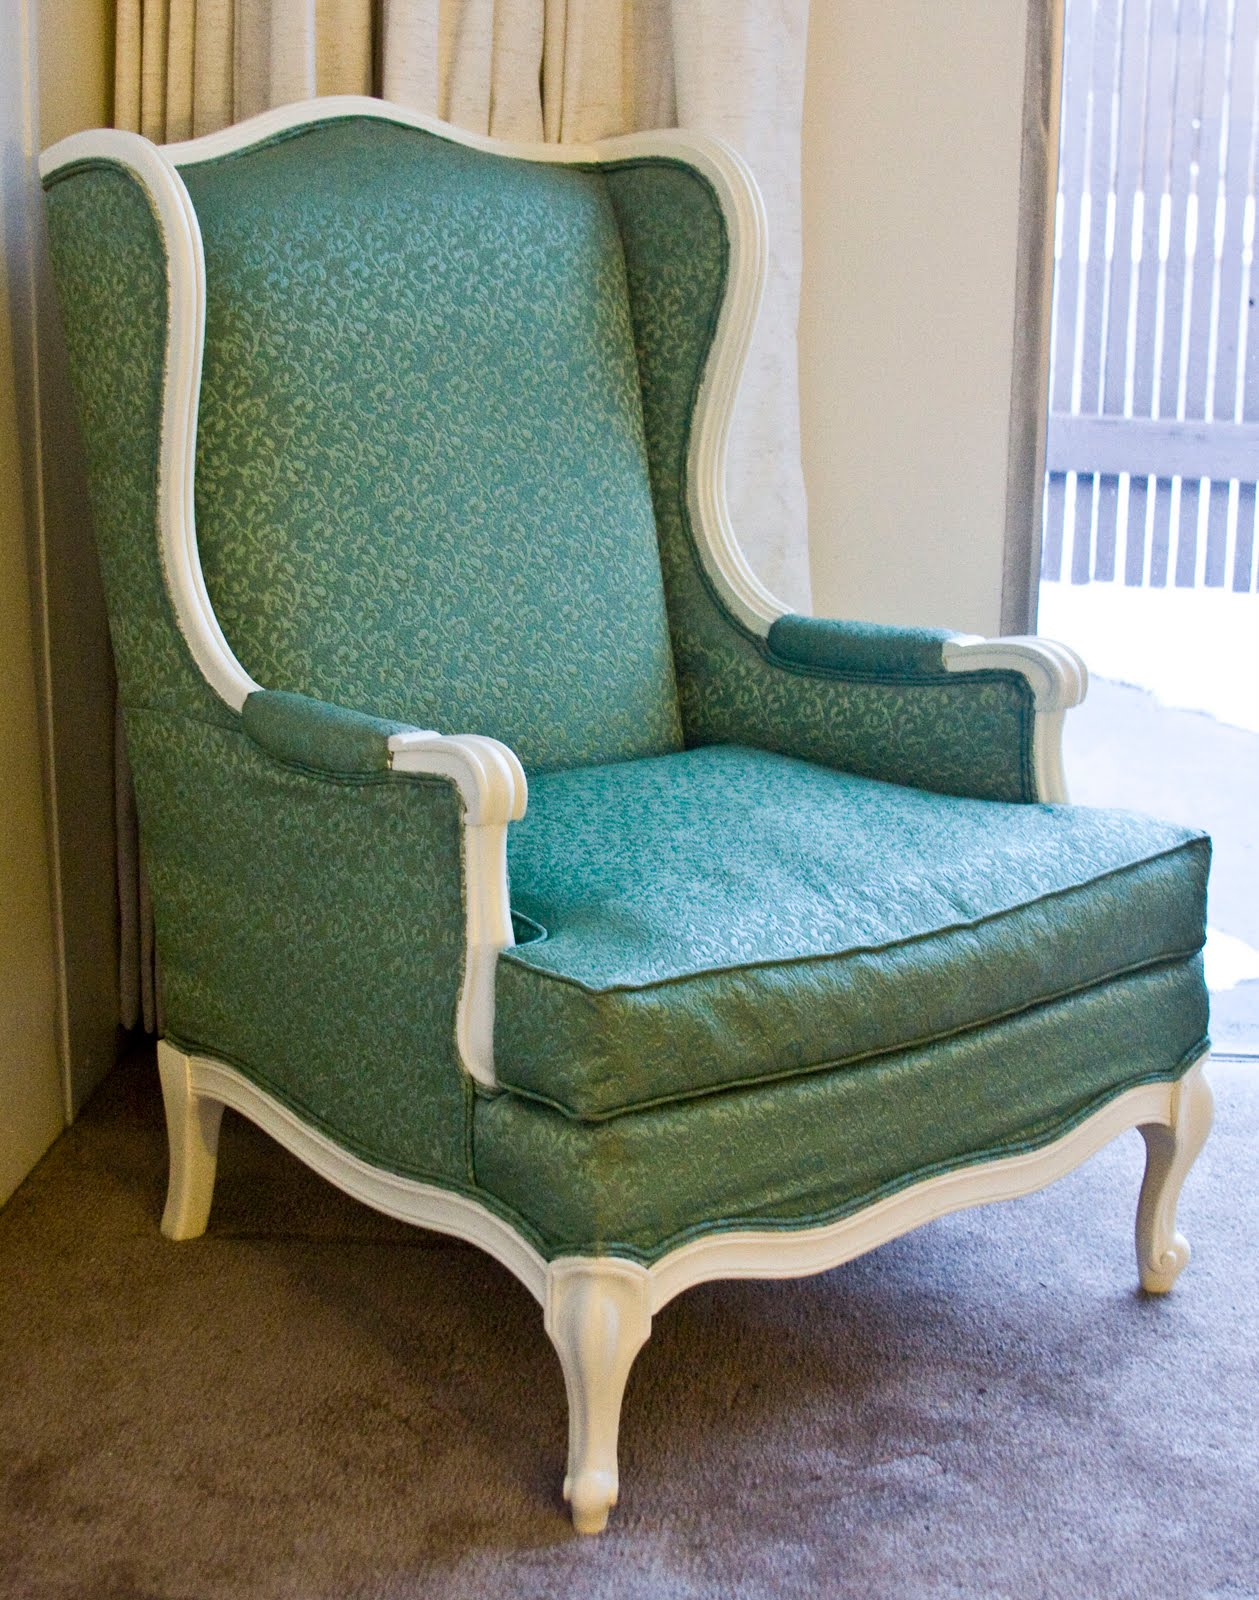 pin modernly shabby chic furniture vintage cream and green wing back on pinterest. Black Bedroom Furniture Sets. Home Design Ideas